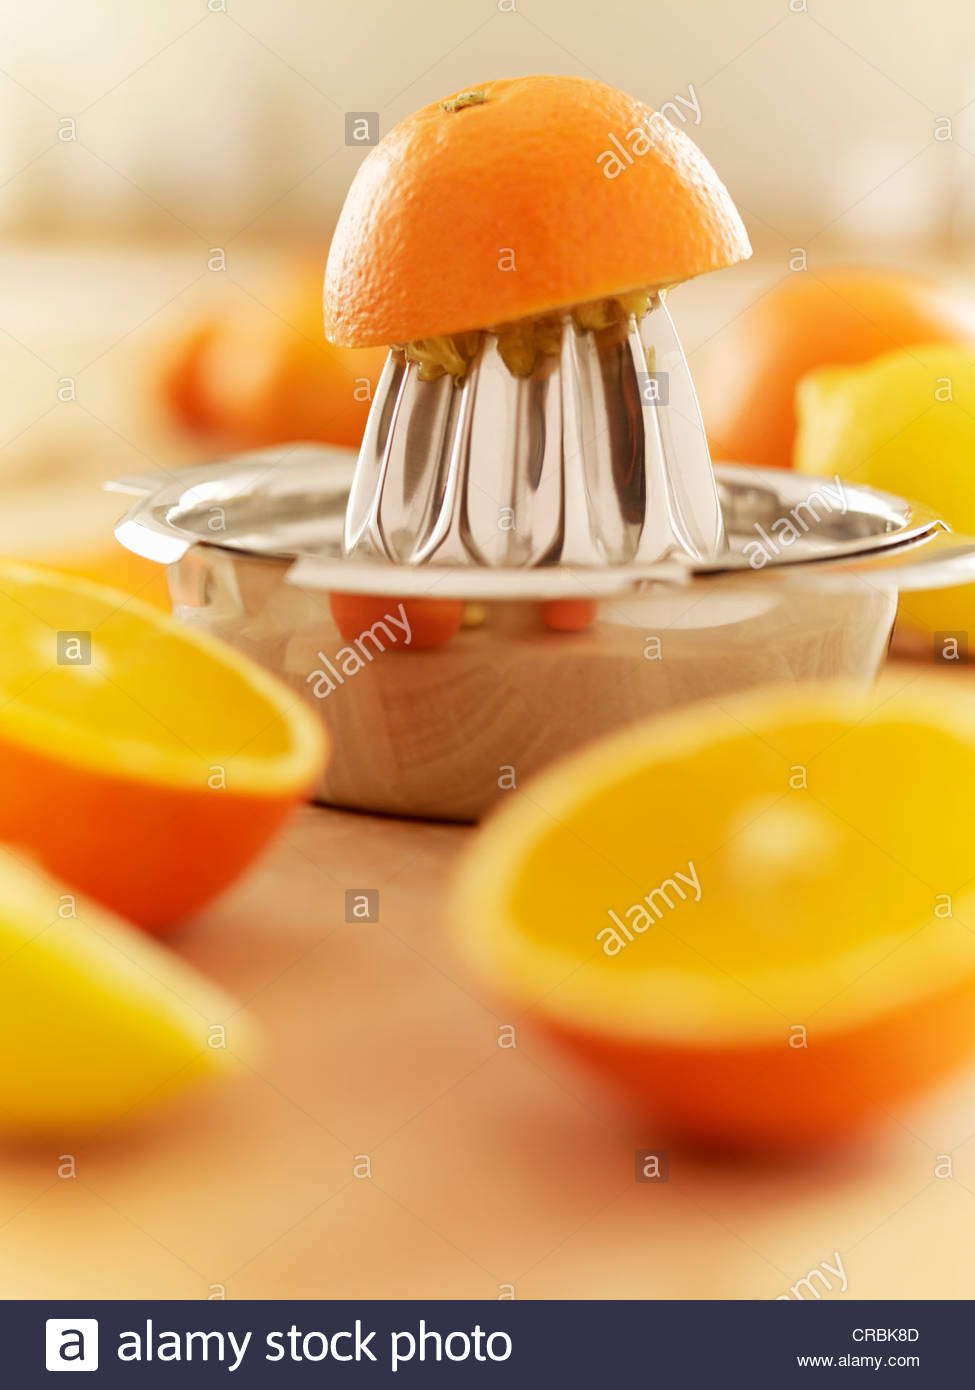 Les oranges et centrifugeuse Photo Stock